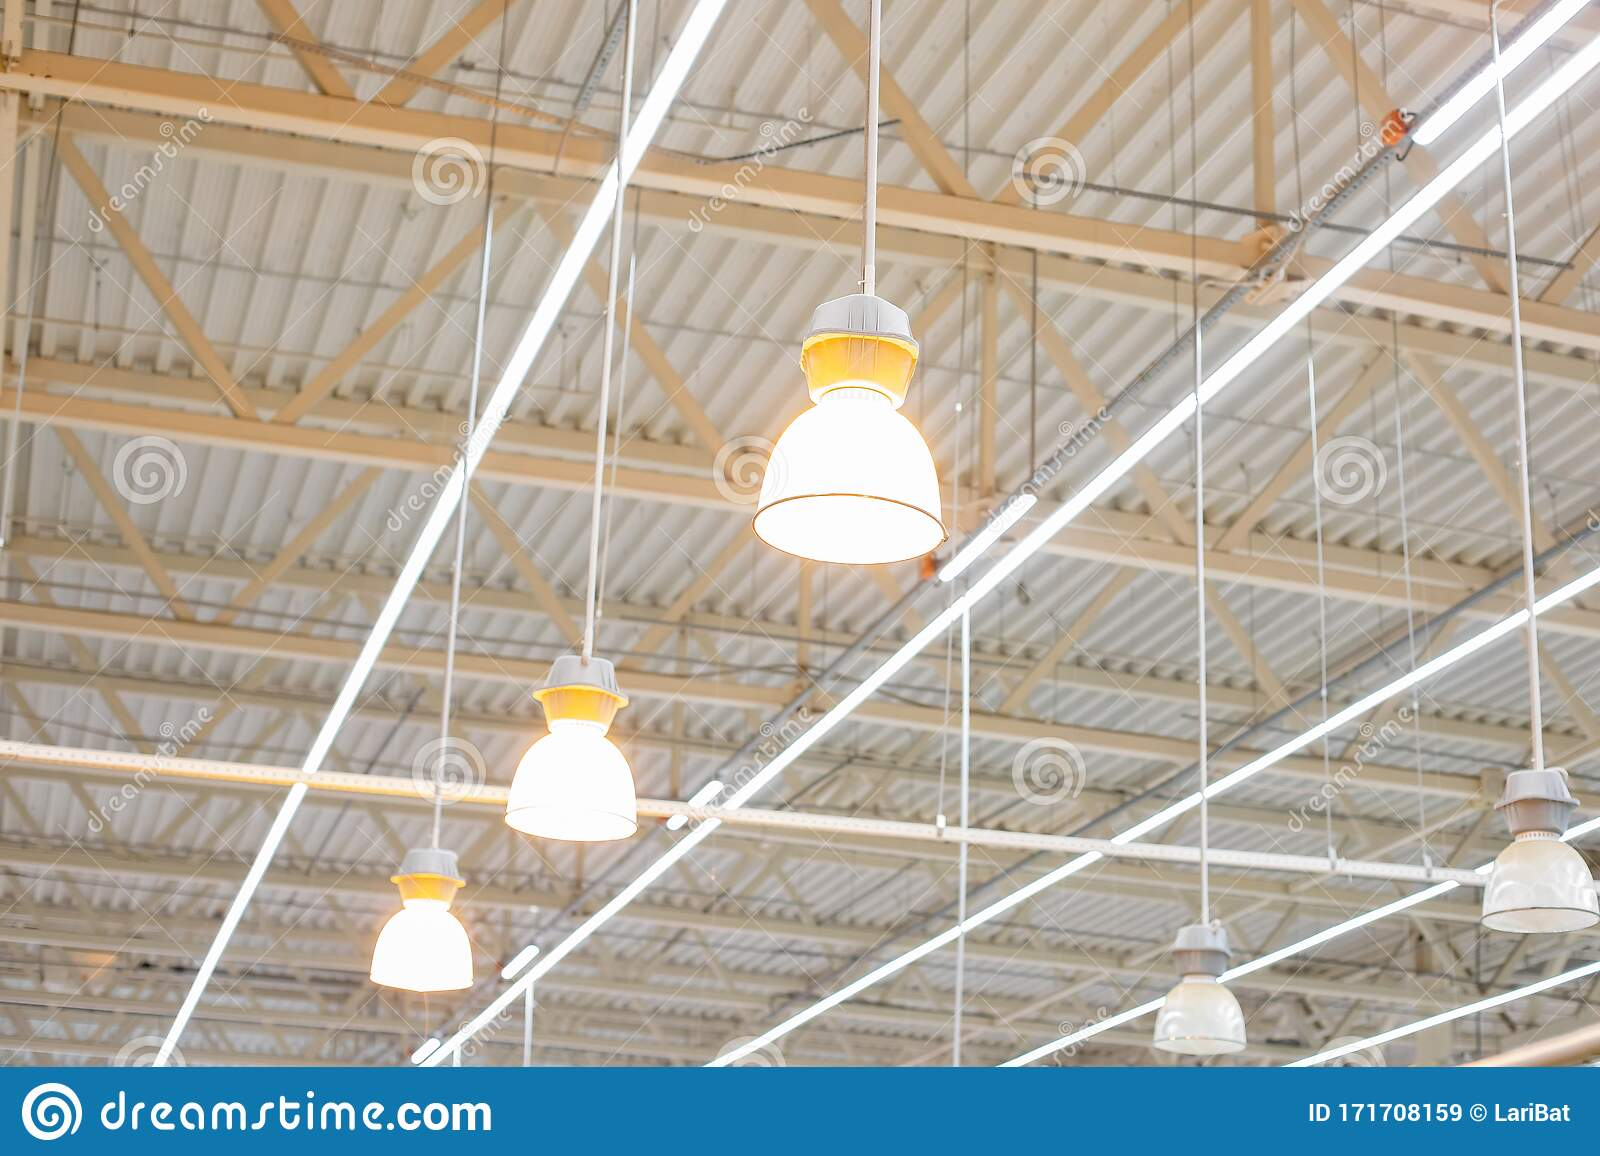 https www dreamstime com ceiling bright lamps modern warehouse image bright light large space trade storage commercial activity large image171708159